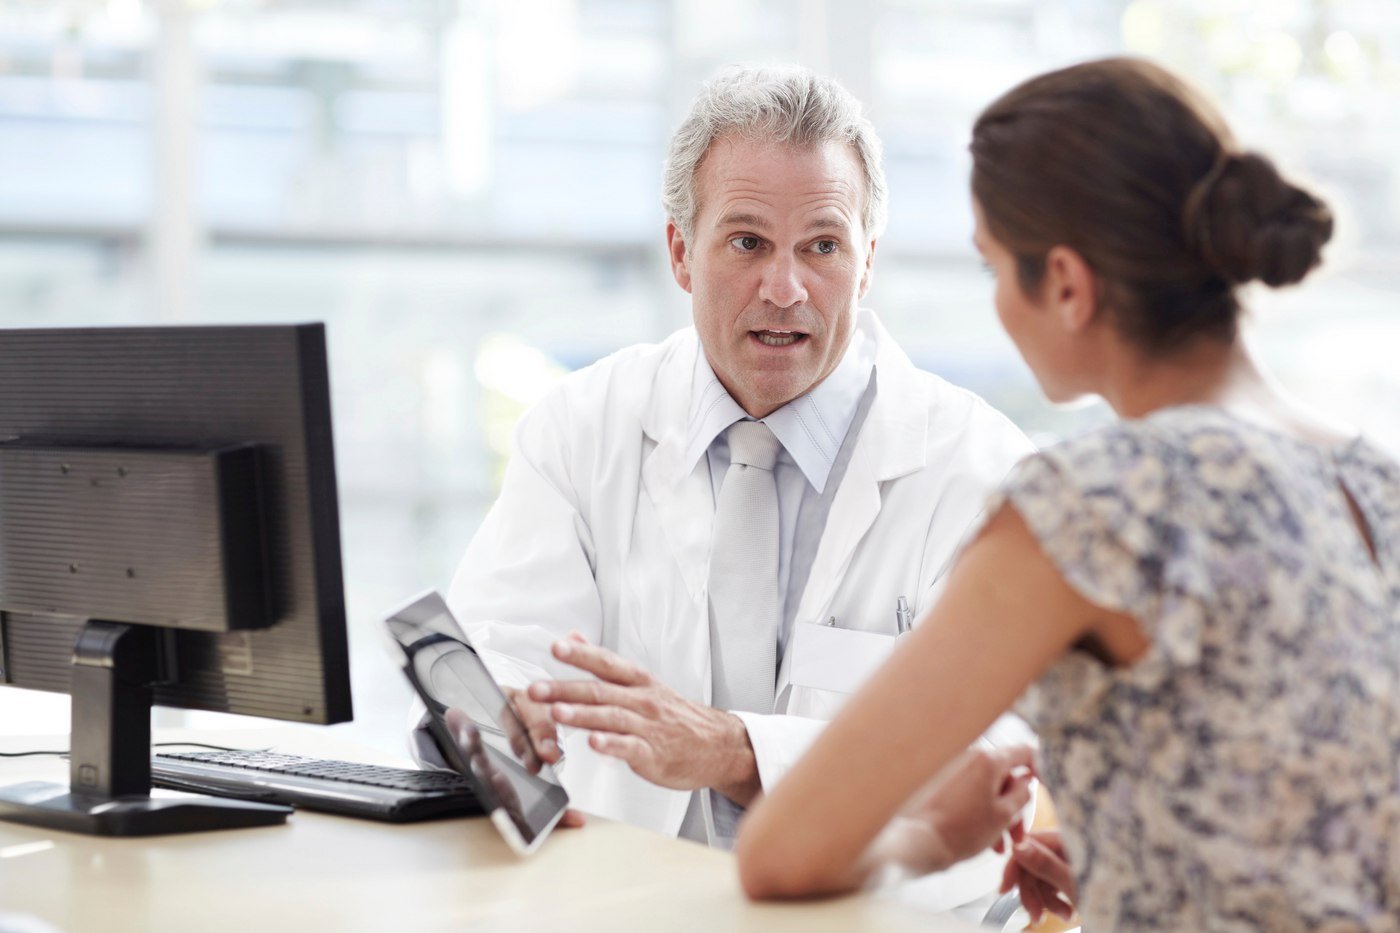 Mobility: Enhancing the patient-provider relationship